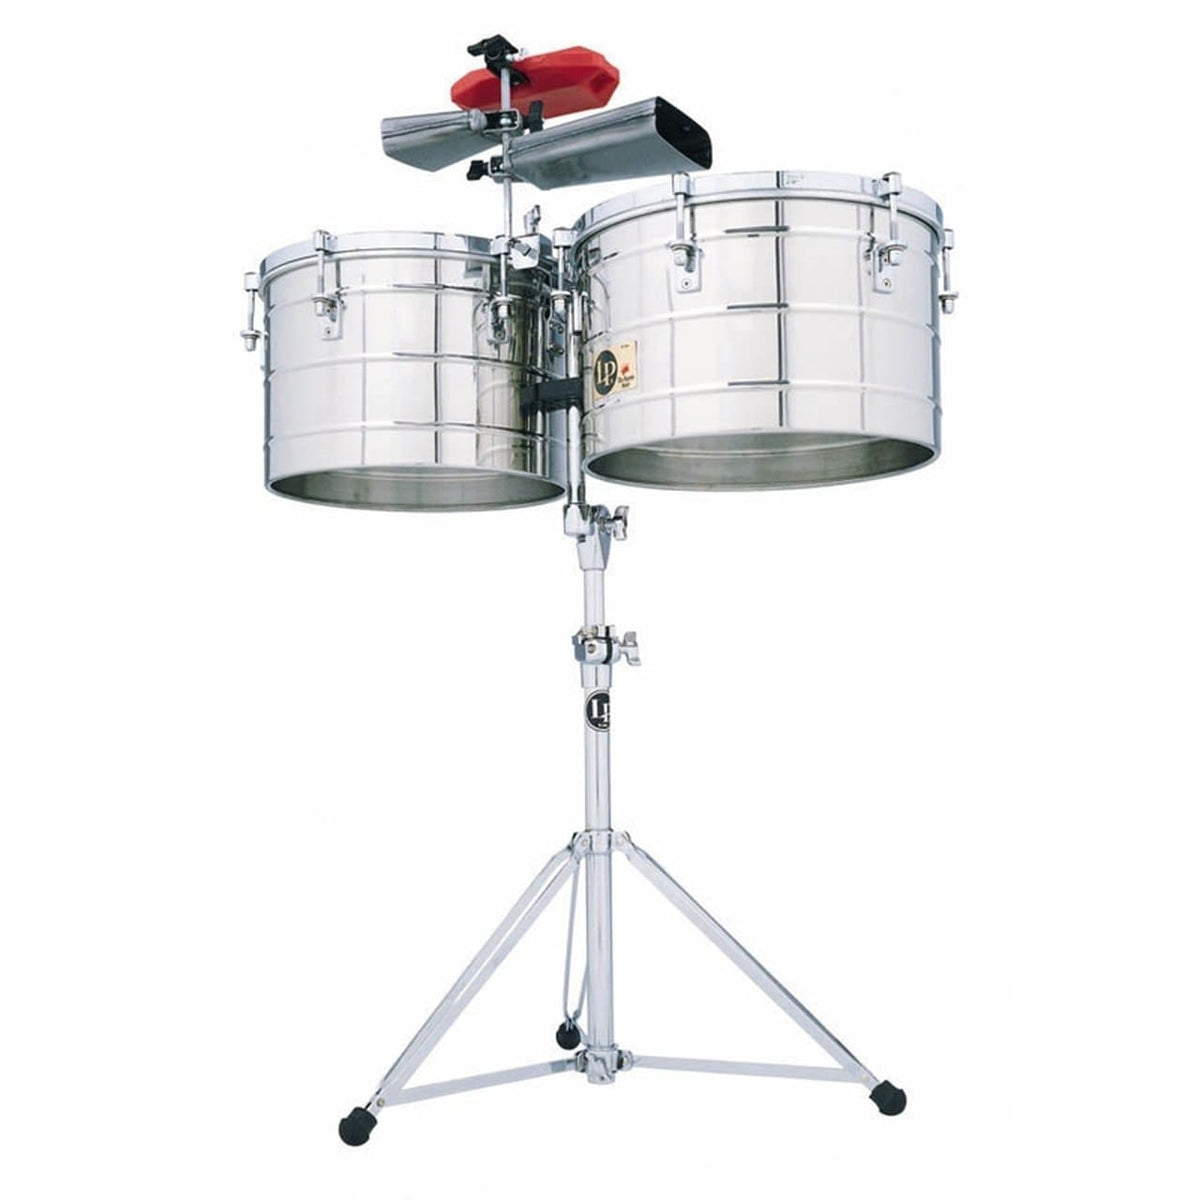 "LP Tito Puente 15 - 16"" Thunder Timbales Stainless Steel Shell With Stand"